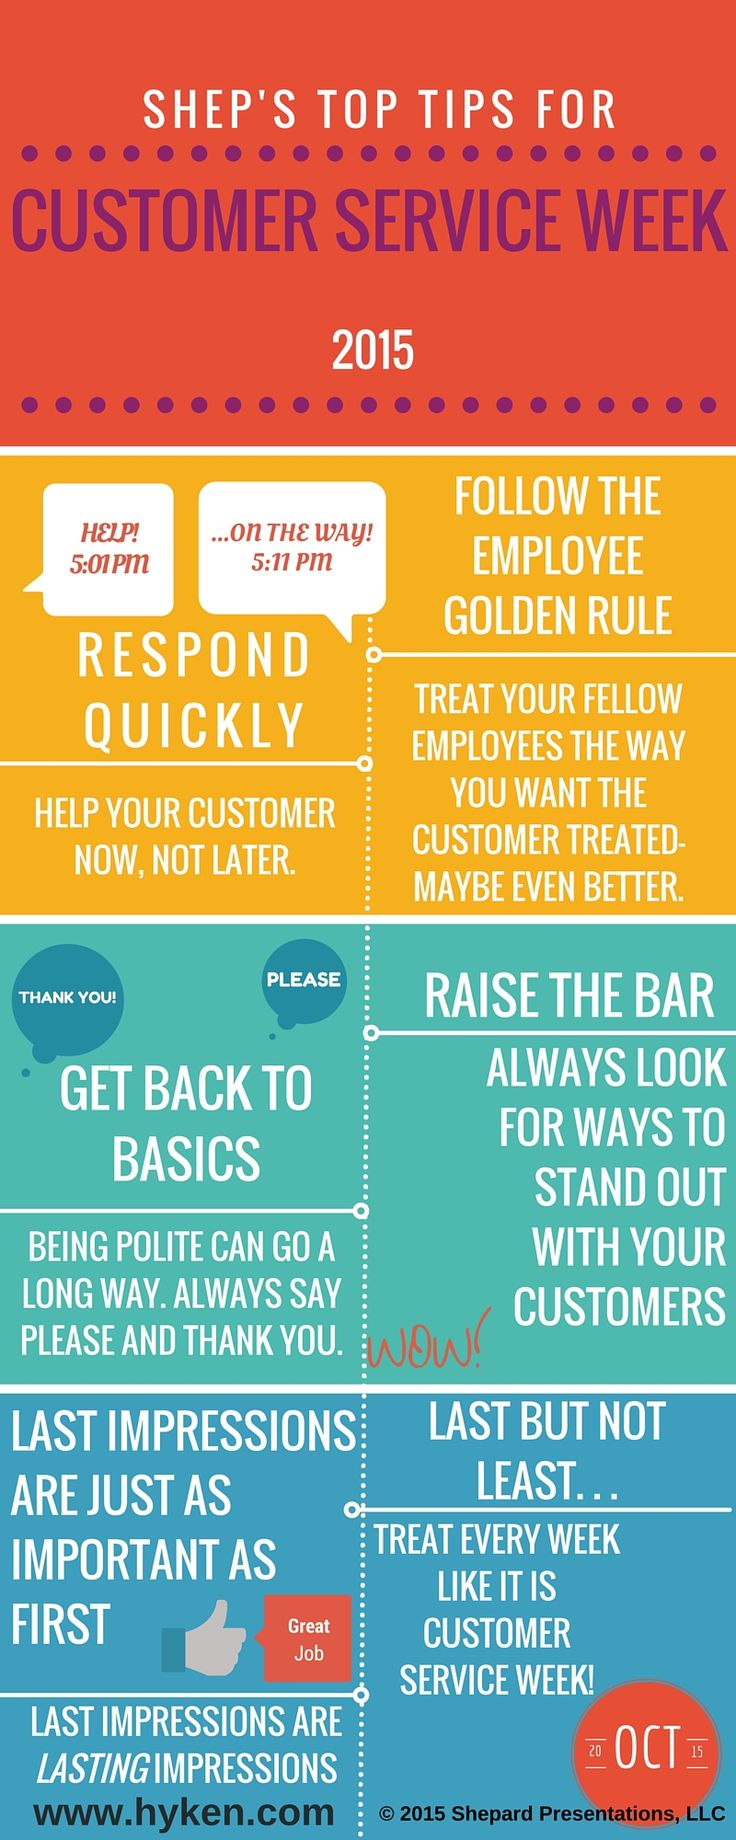 17 best images about customer service i want to give this week is customer service week it shouldn t be a week it